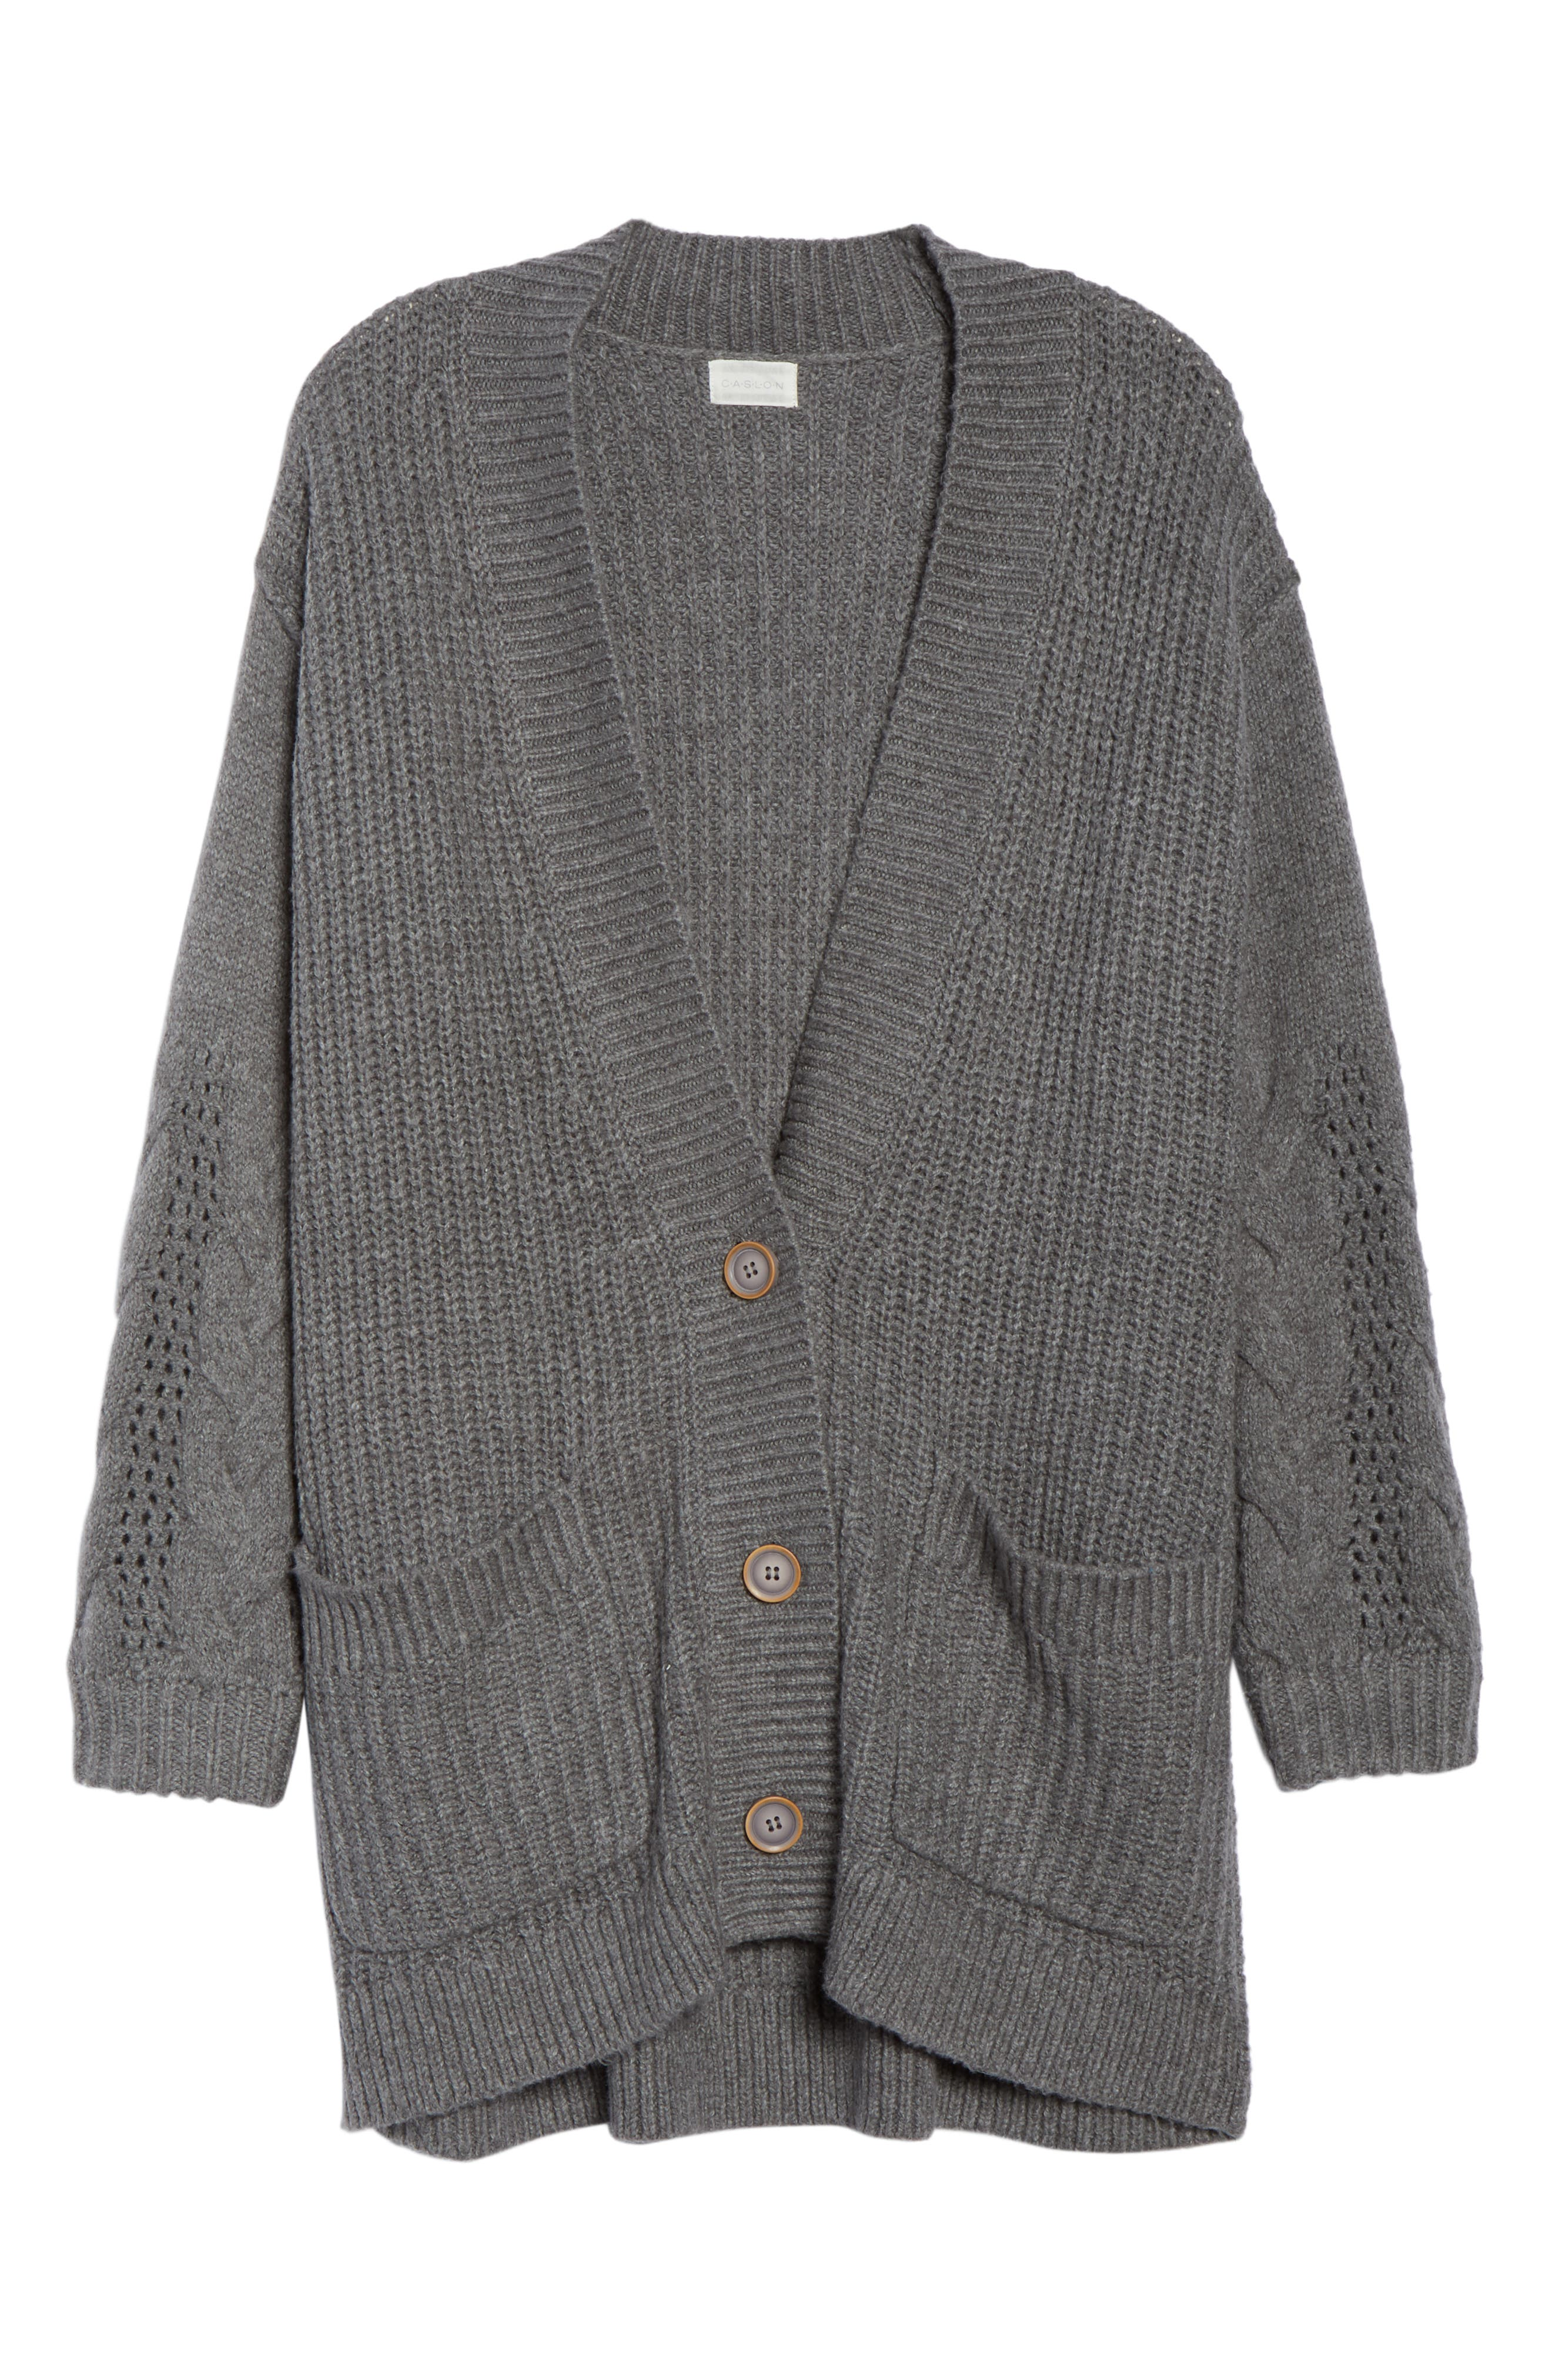 Cable Knit Sleeve Cardigan,                             Alternate thumbnail 6, color,                             GREY DARK HEATHER